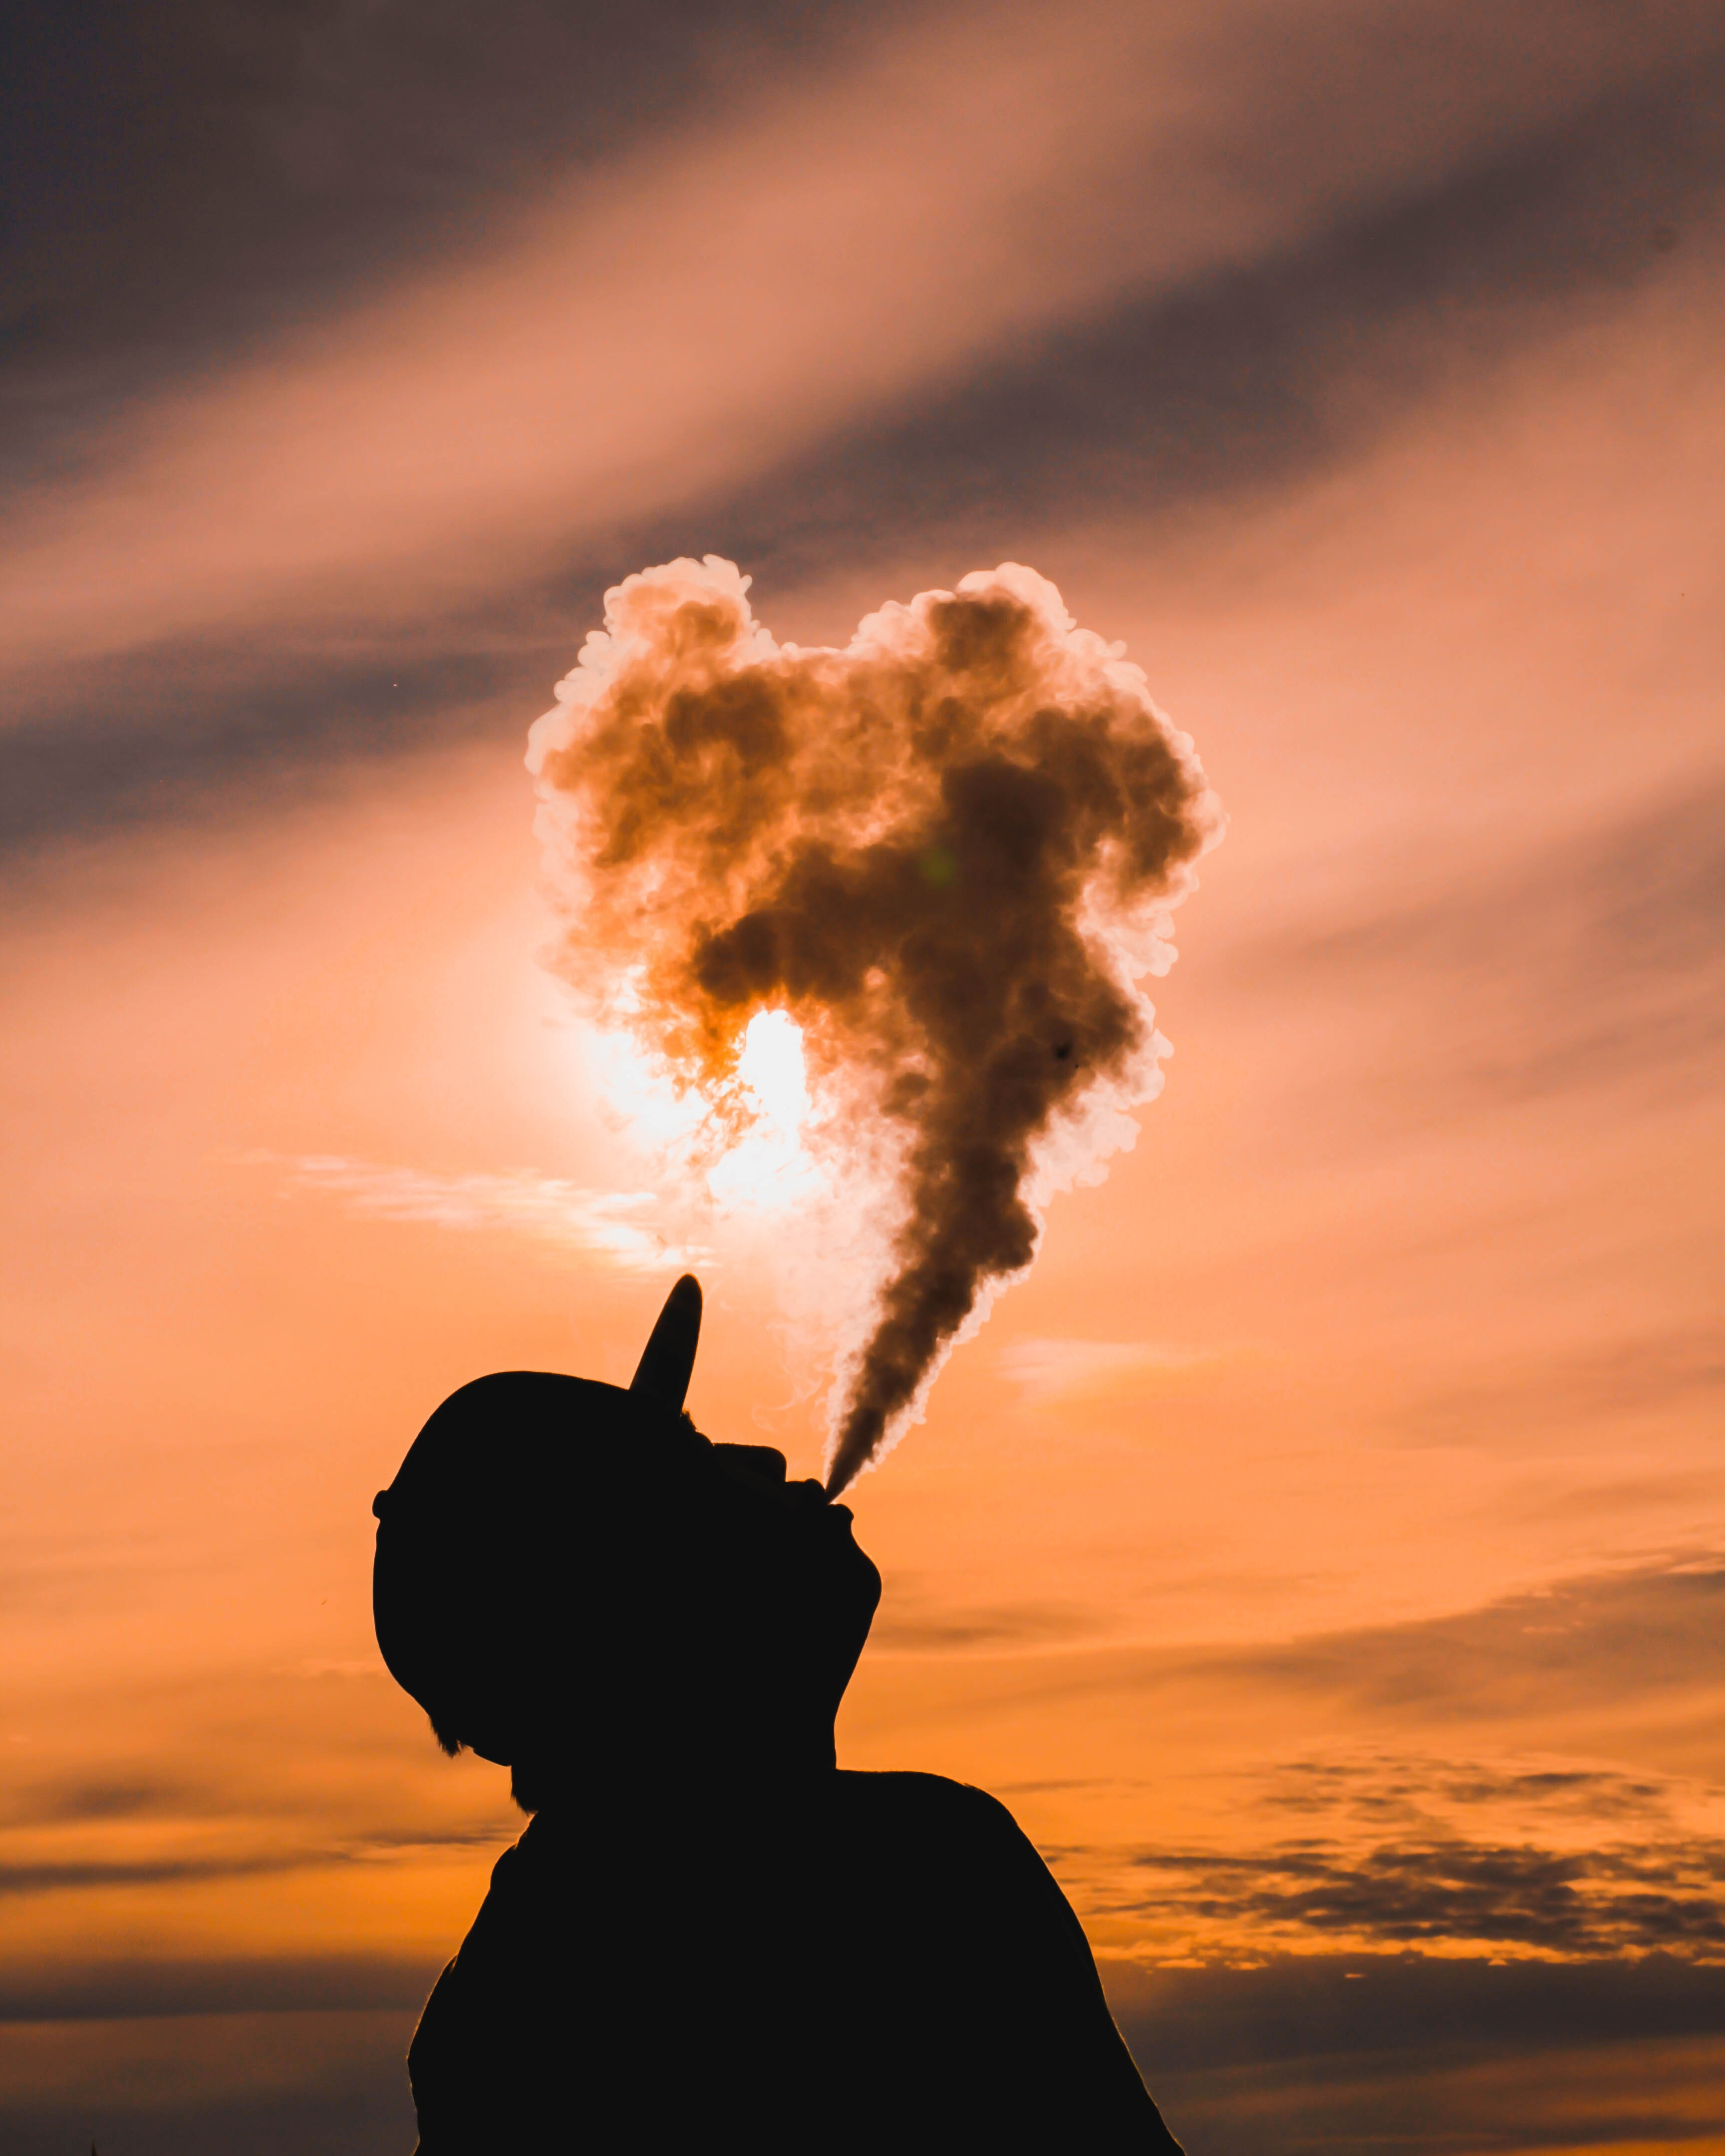 A person blowing smoke up into the air during a sunset.